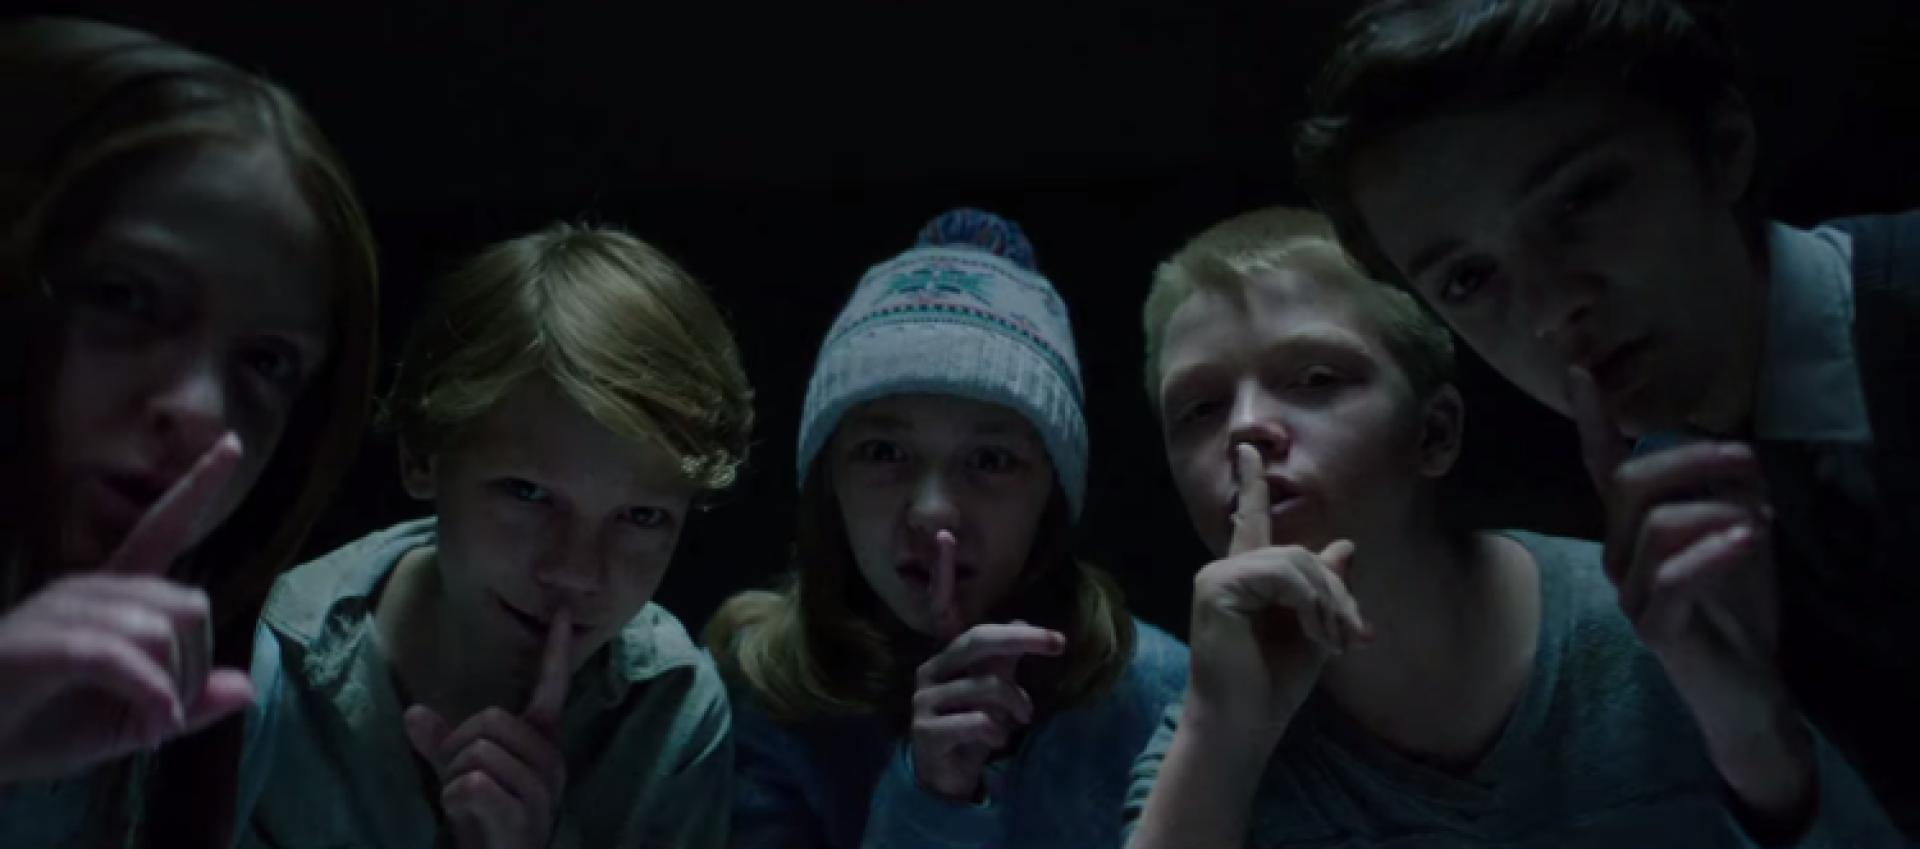 Box Office: Sinister 2